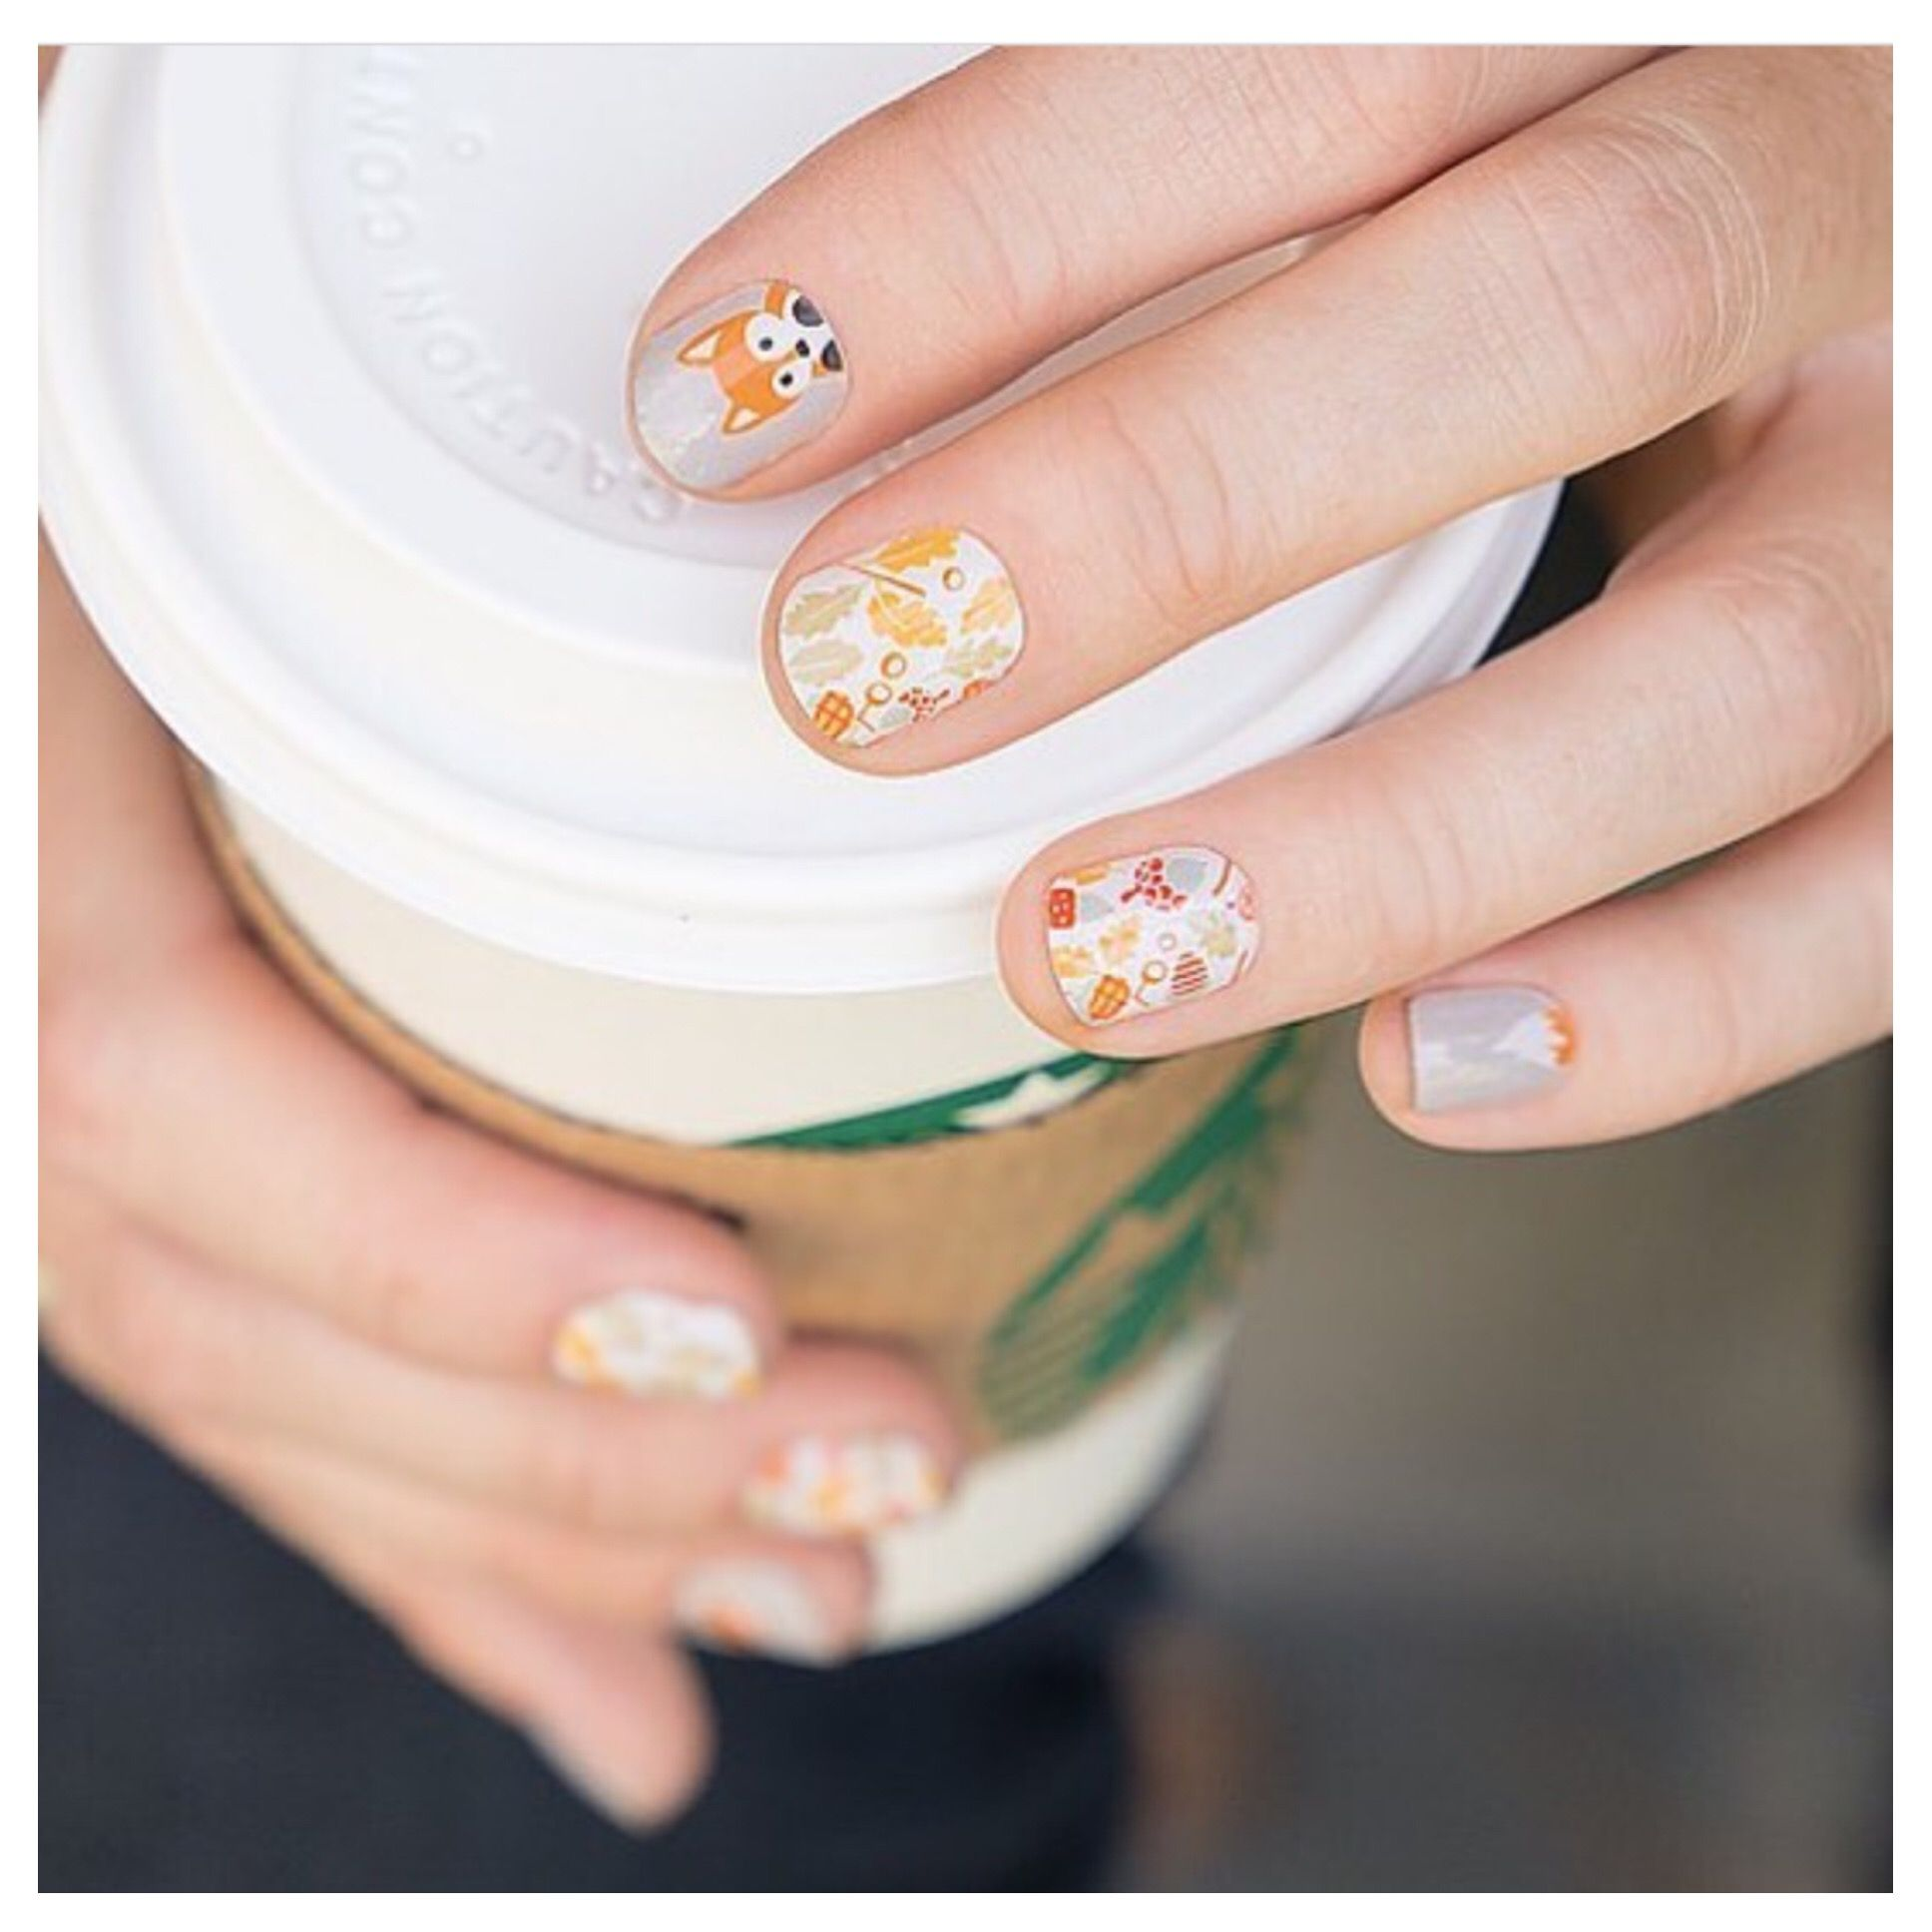 Get ready for all your fall festivities in style with this adorable ...